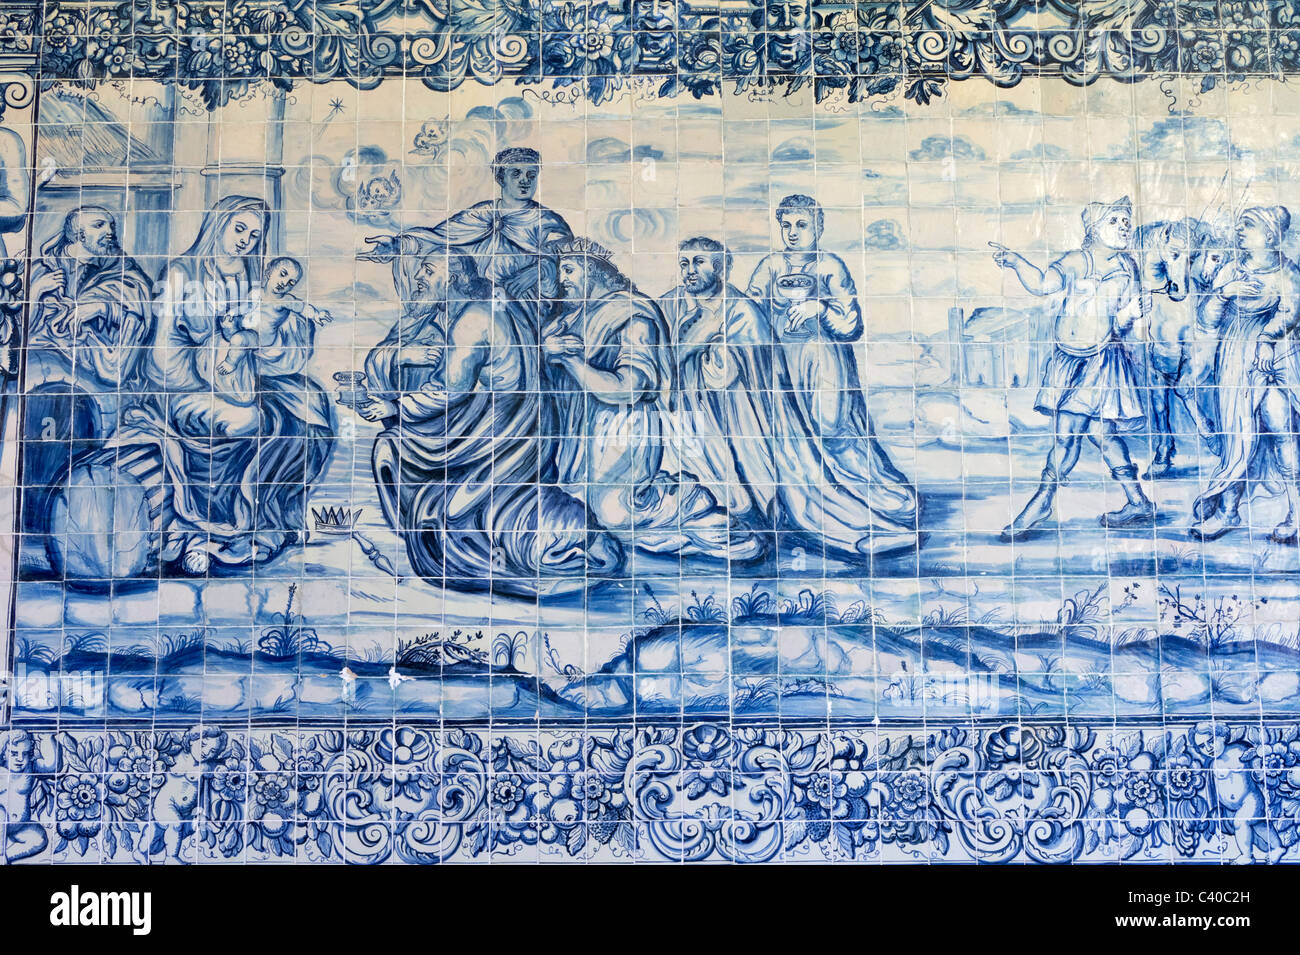 Traditional portuguese azulejos painted tiles - Stock Image